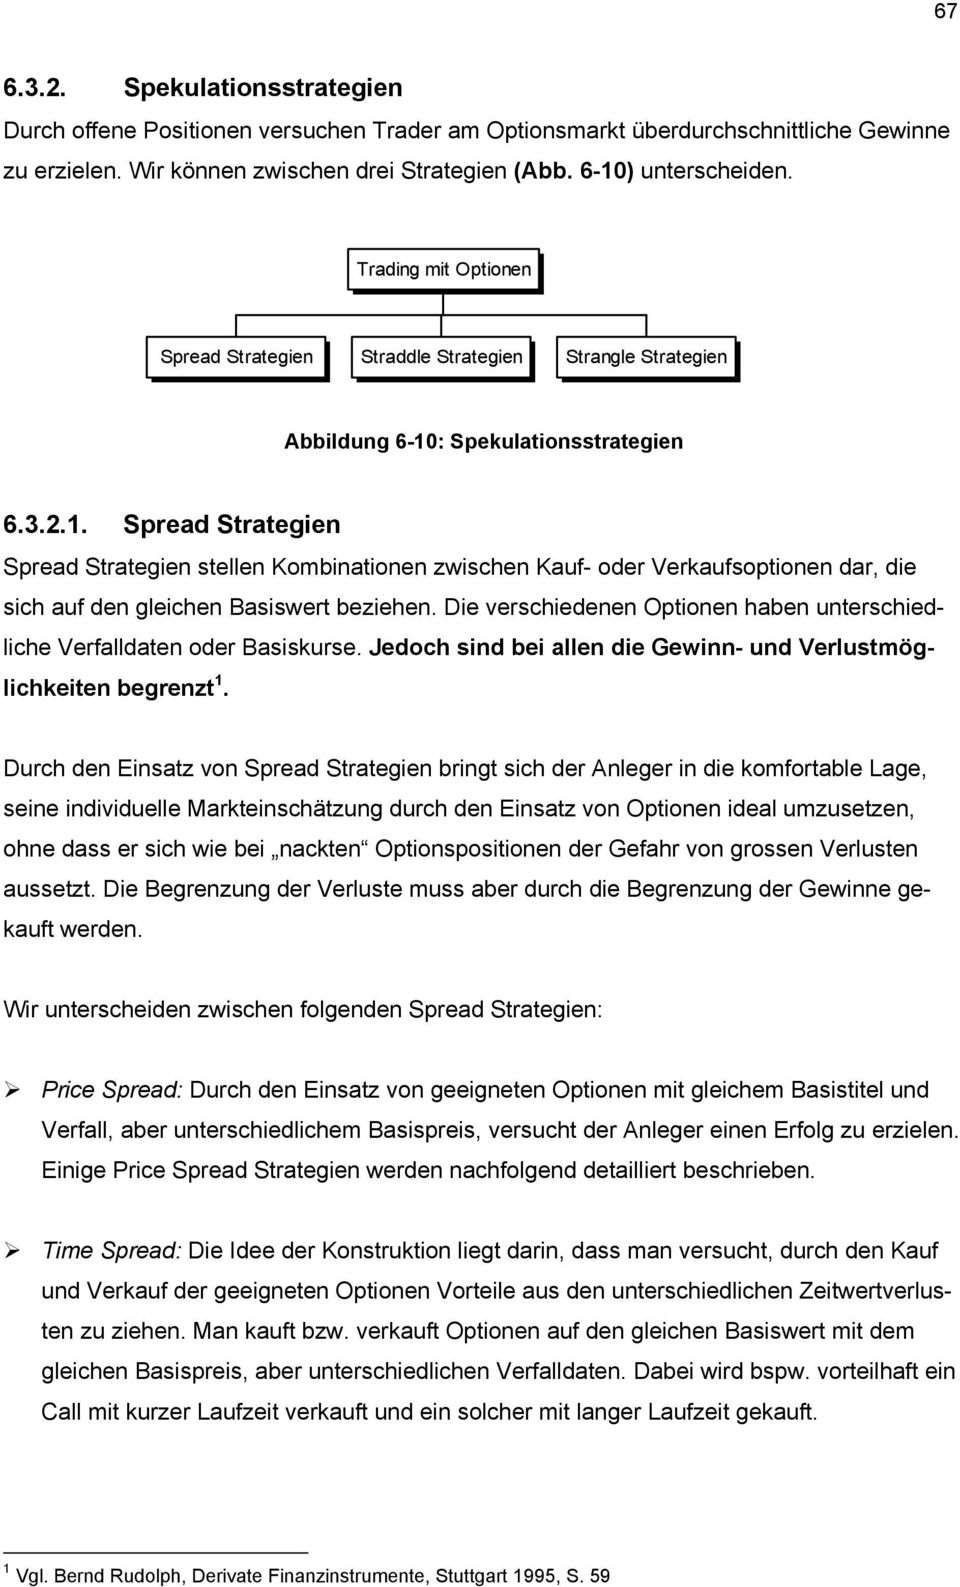 : Spekulationsstrategien 6.3.2.1. Spread Strategien Spread Strategien stellen Kombinationen zwischen Kauf oder Verkaufsoptionen dar, die sich auf den gleichen Basiswert beziehen.